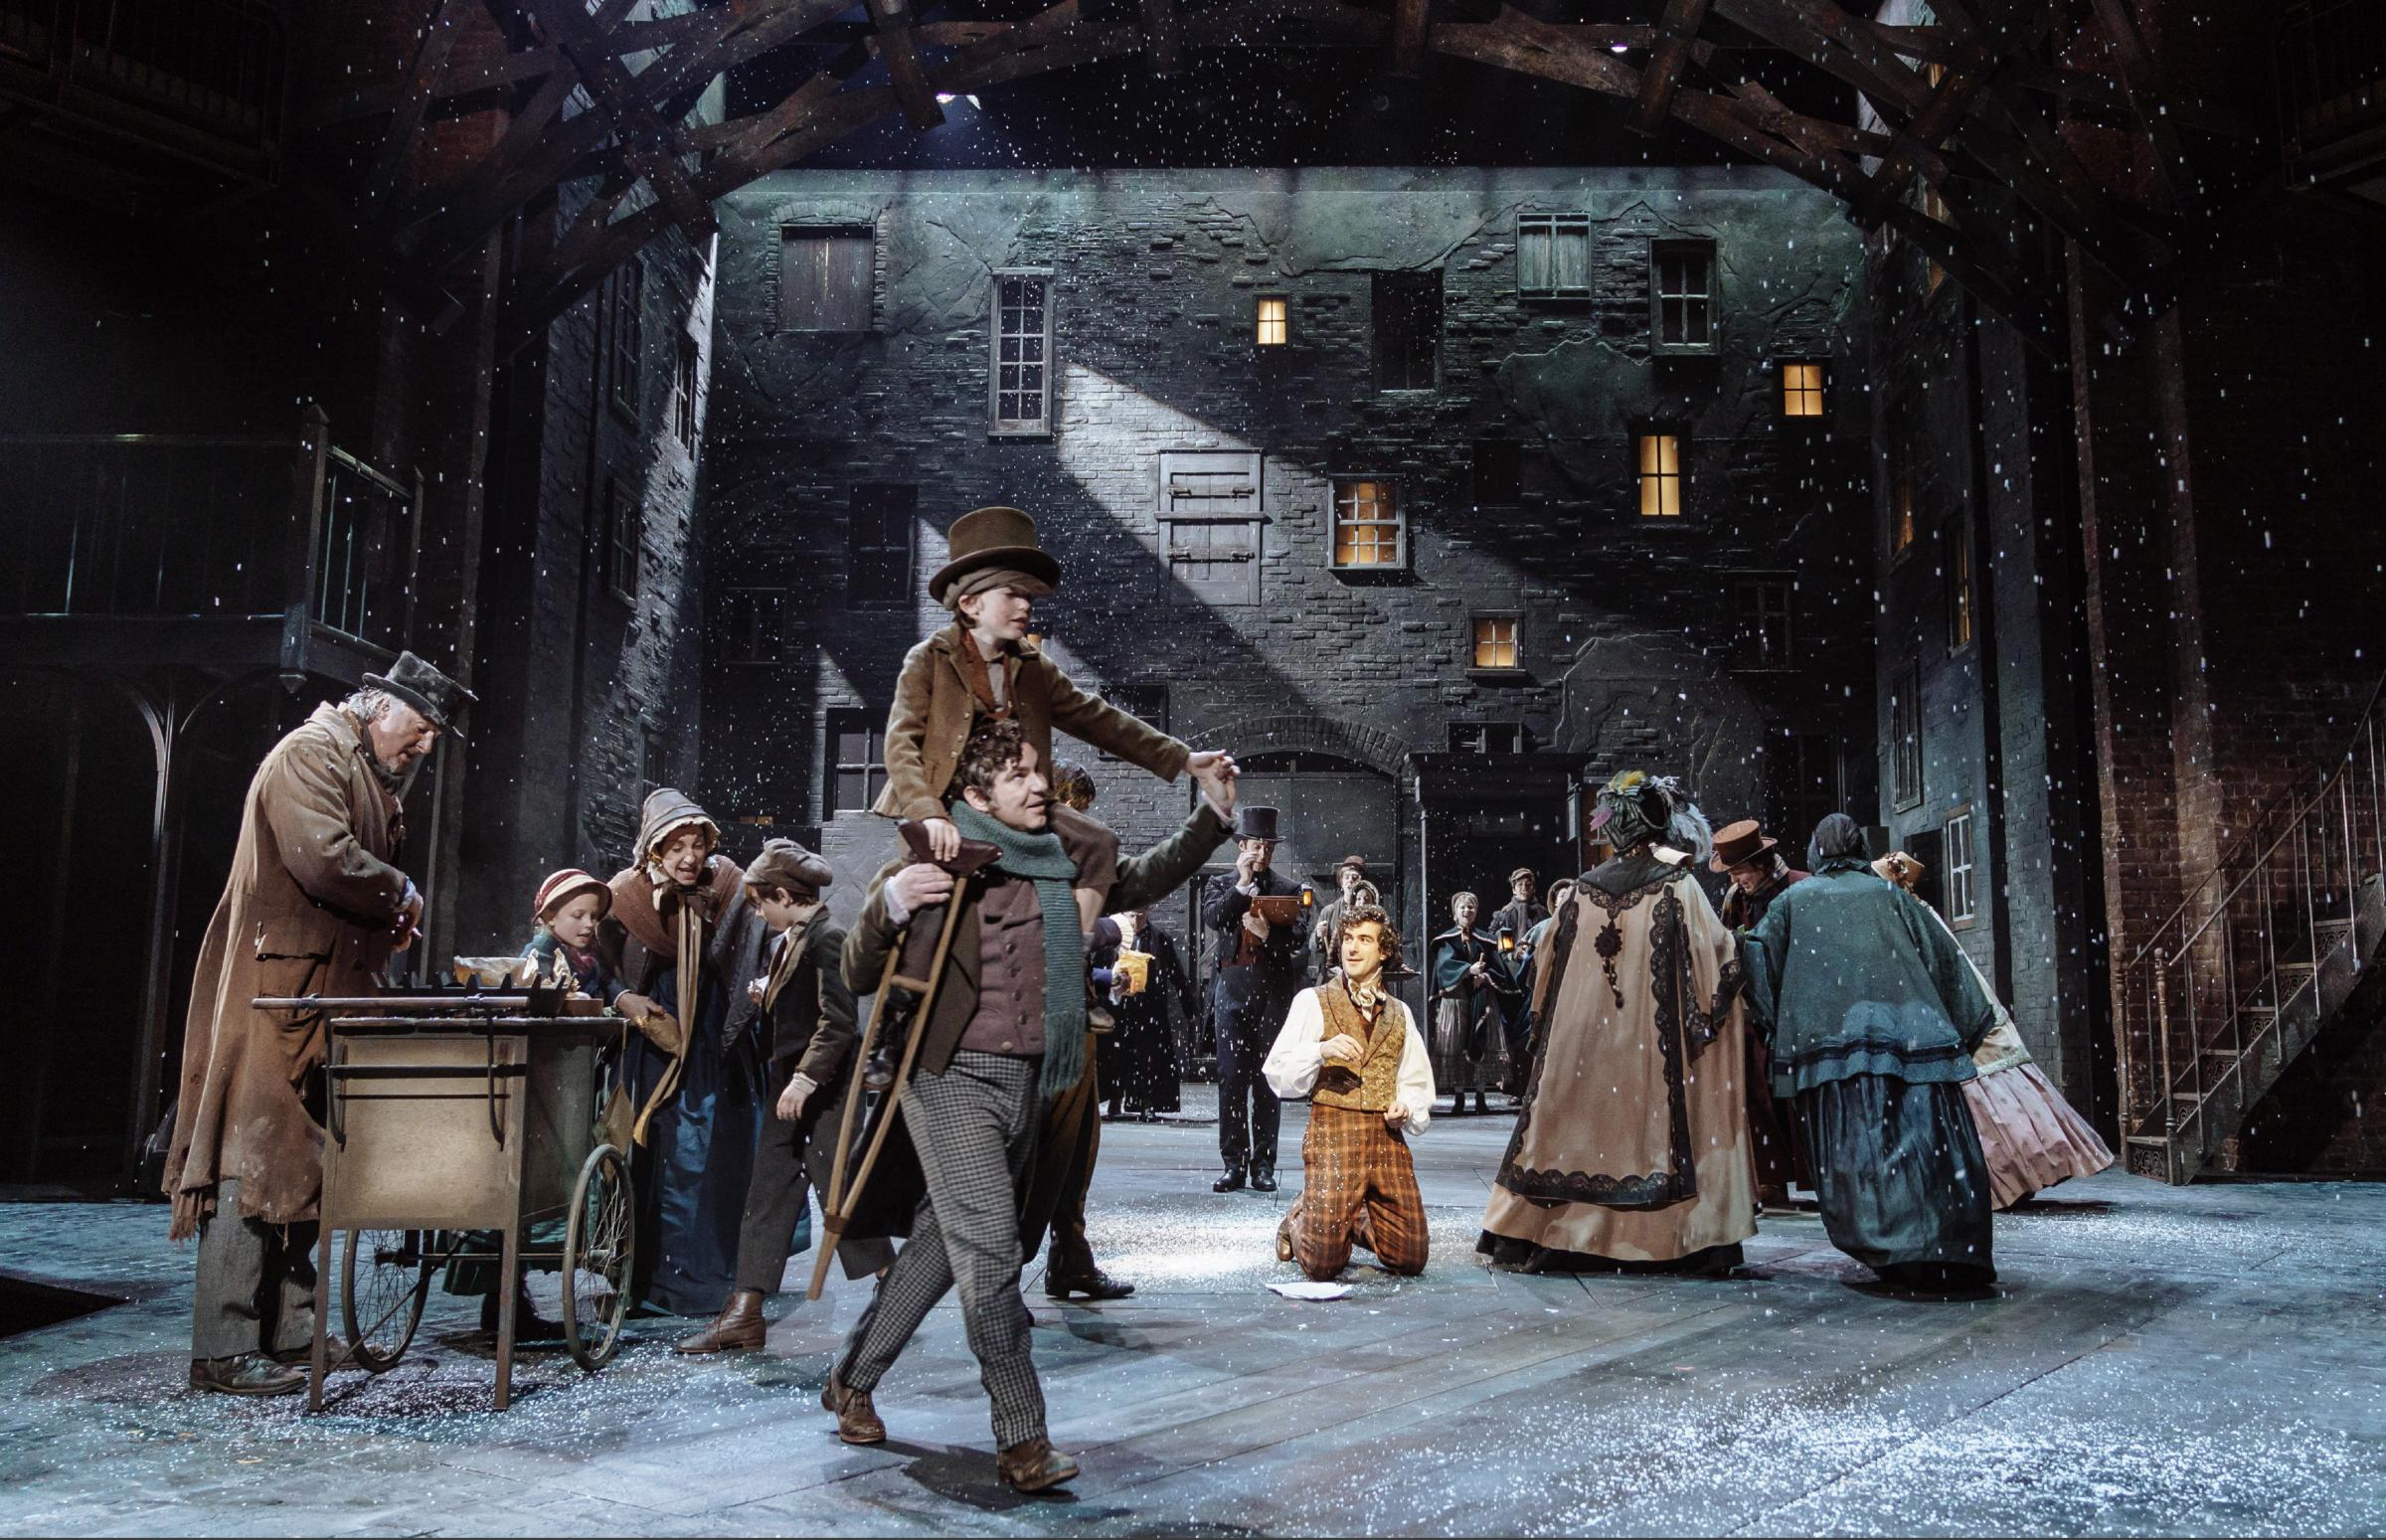 FESTIVE TREAT: A scene from the RSC's production of A Christmas Carol which opens in Stratford next week. (Photo: Manuel Harlan).